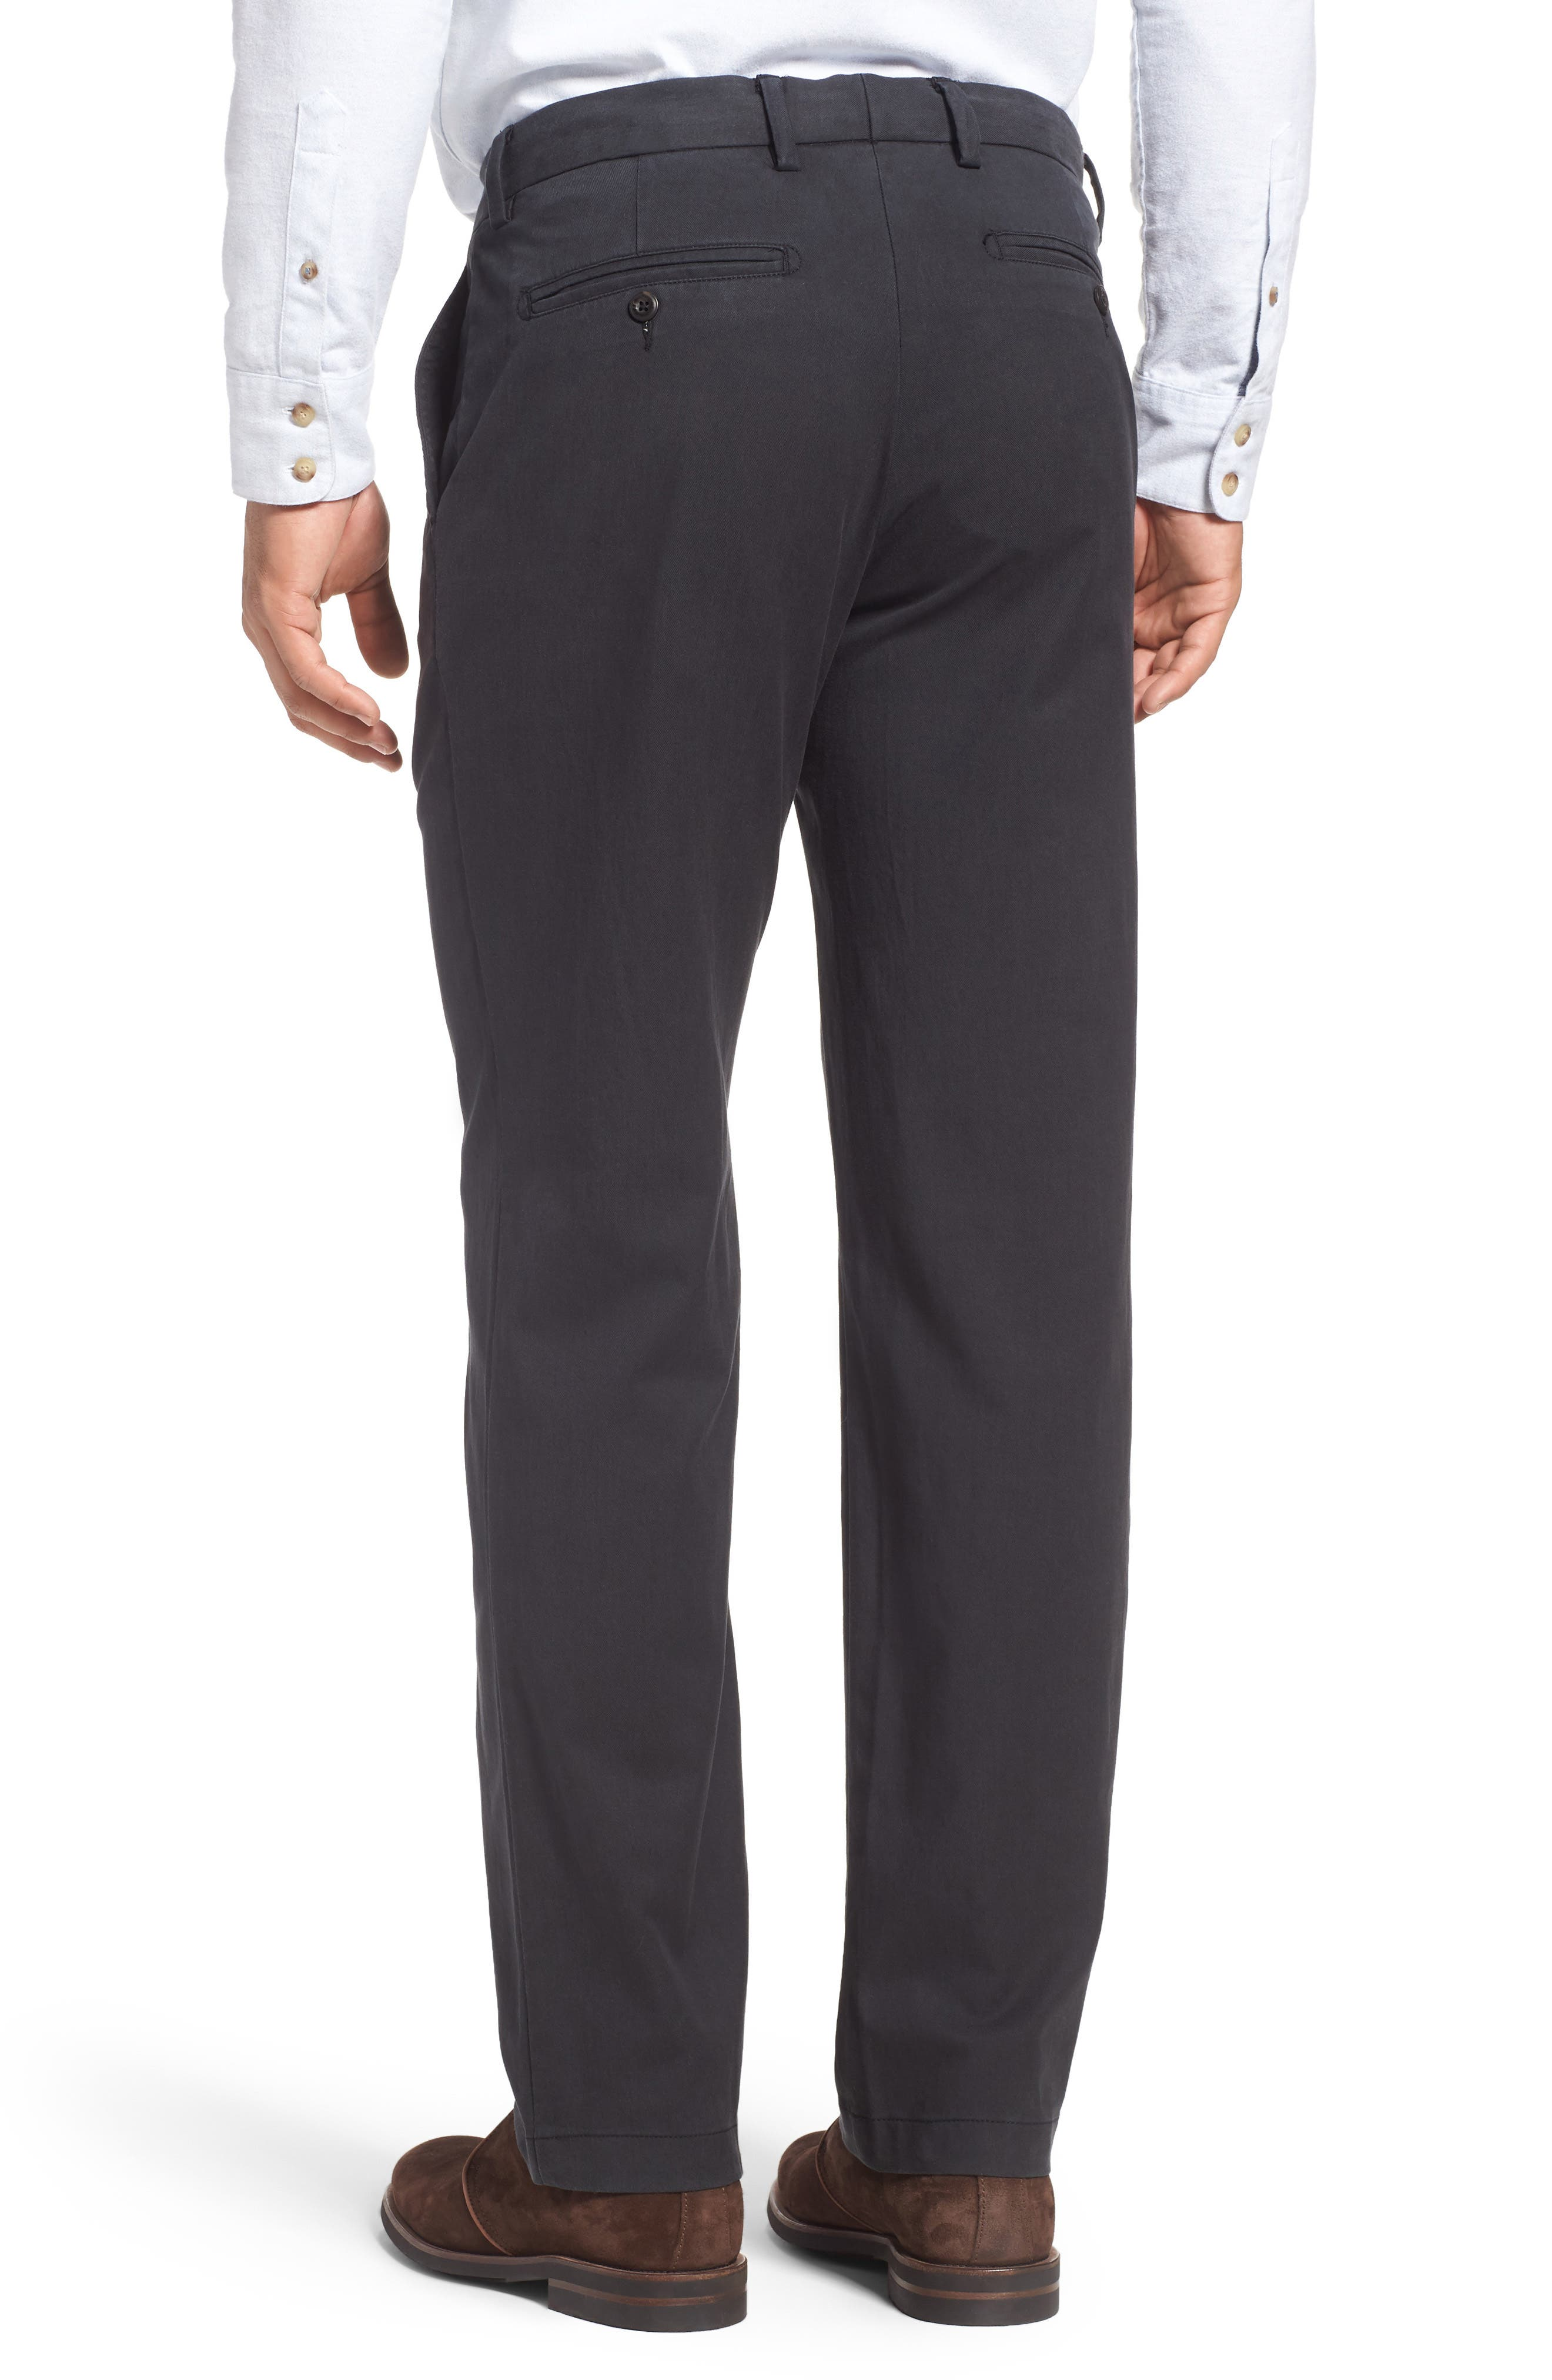 Offshore Flat Front Pants,                             Alternate thumbnail 2, color,                             001